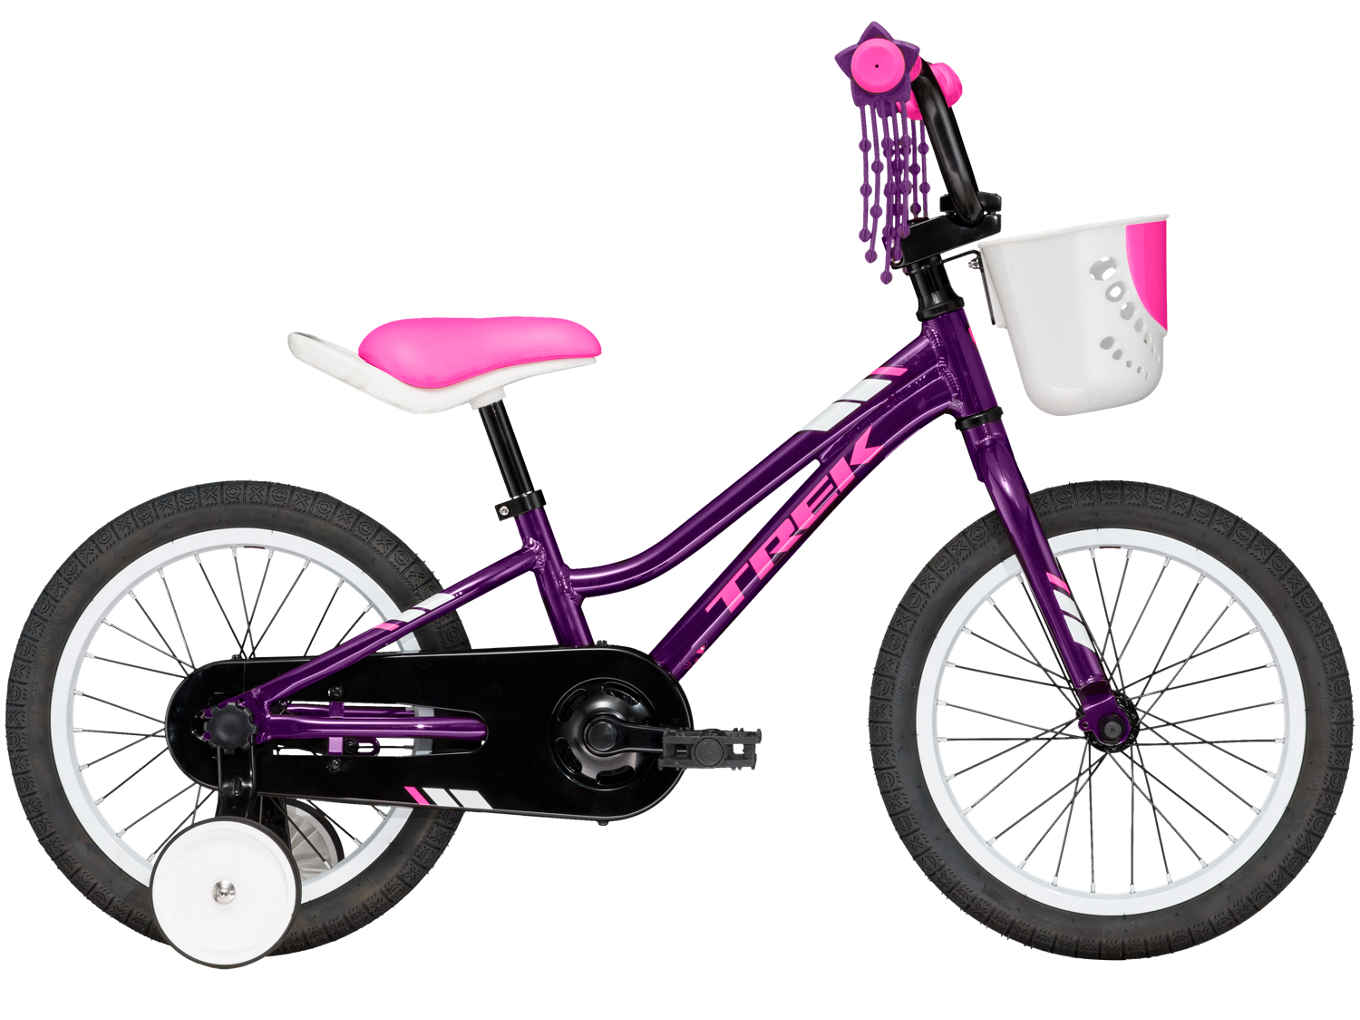 Teaching and learning to ride is a breeze with Precaliber 16 Girl's. It has a handle built into the saddle so you can guide while they ride, and tool-less training wheels that are super easy to install and remove. It's a great fit for kids ages 4-5 between 39-46˝ tall.